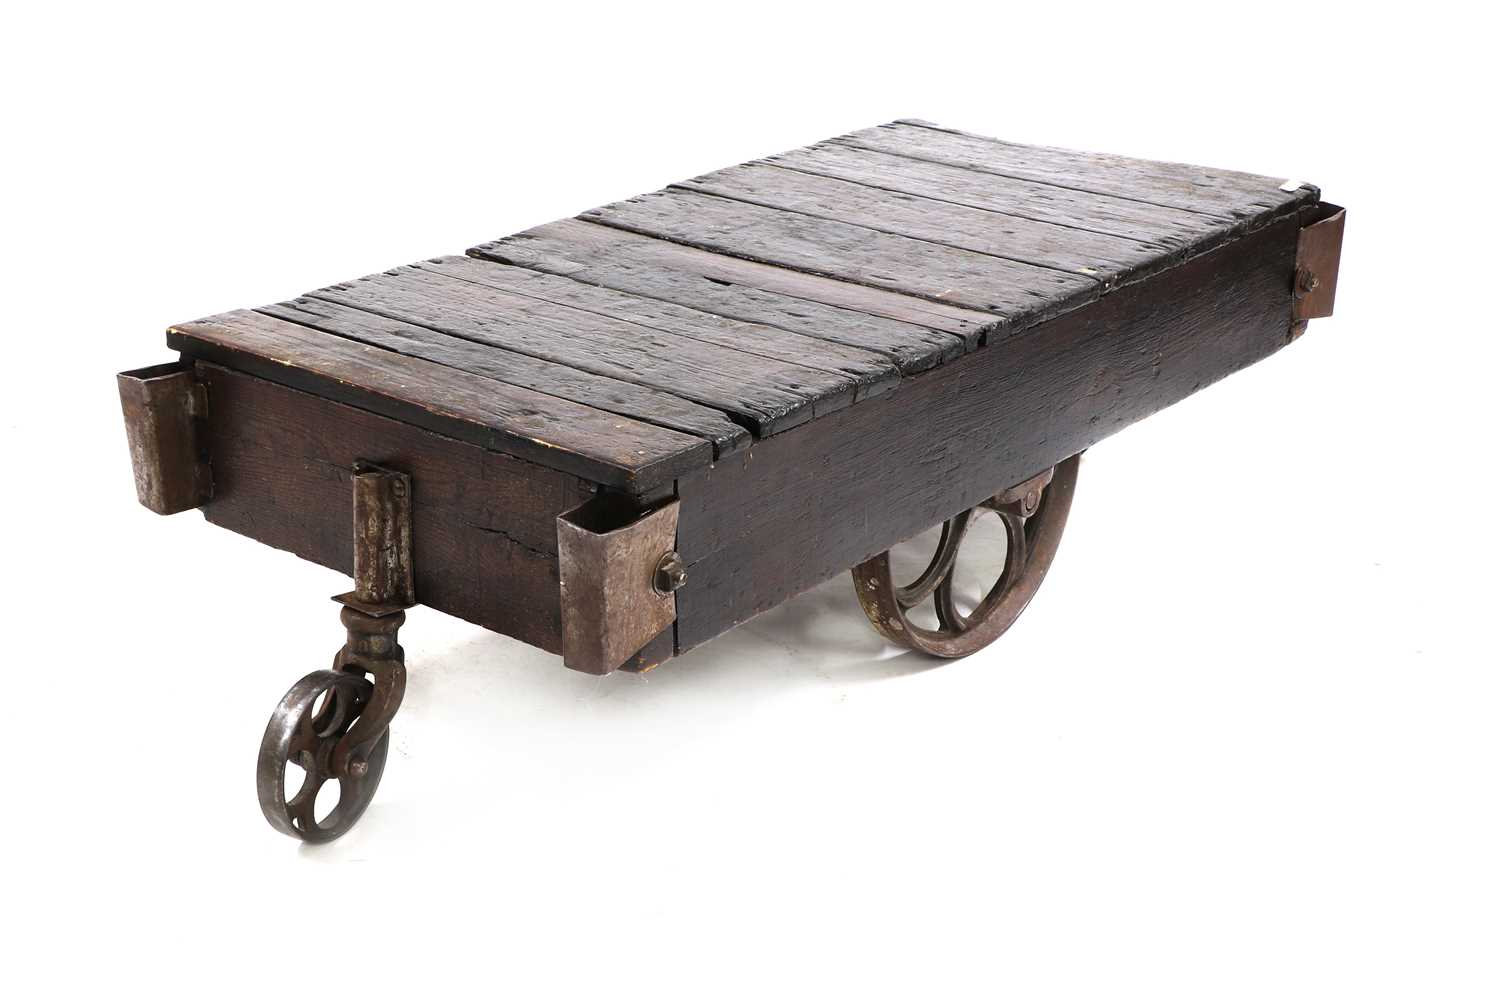 An industrial low coffee table, - Image 2 of 3